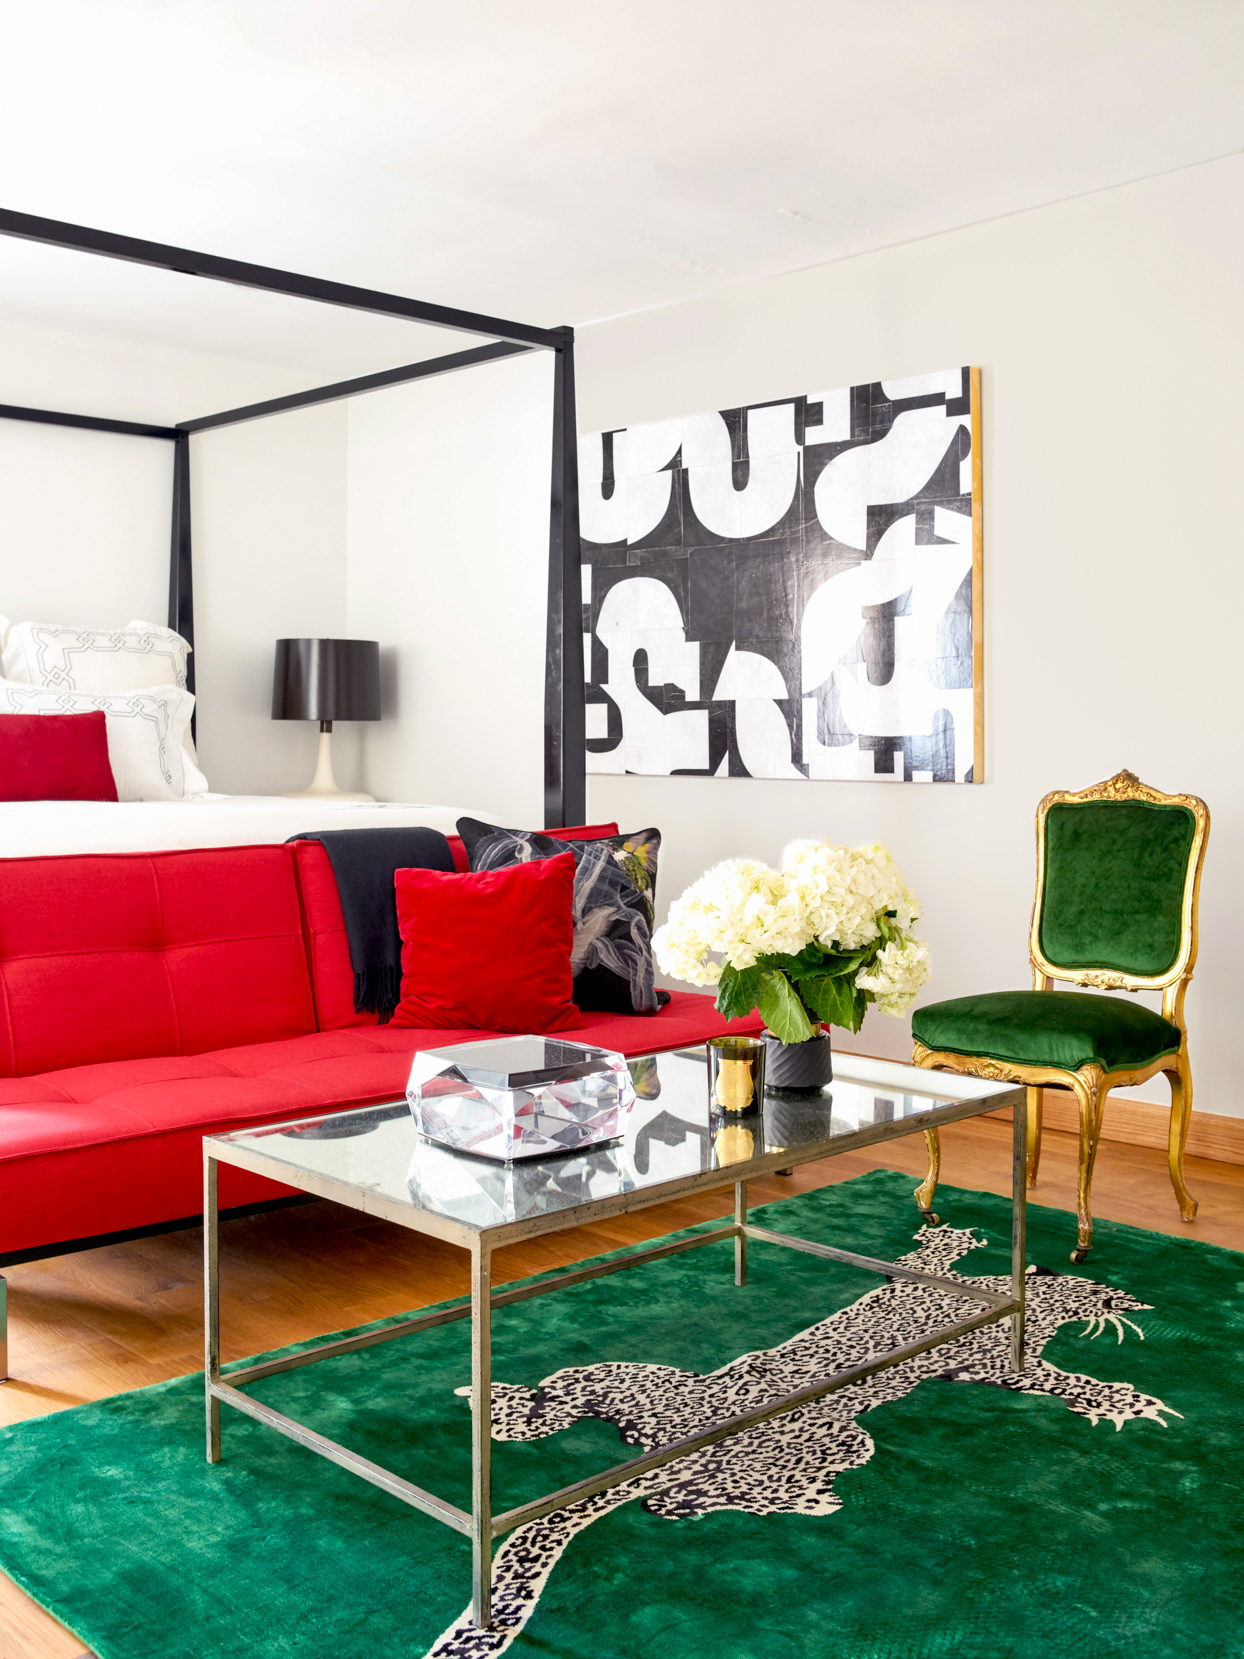 modern living room with red couch and green rug and chair